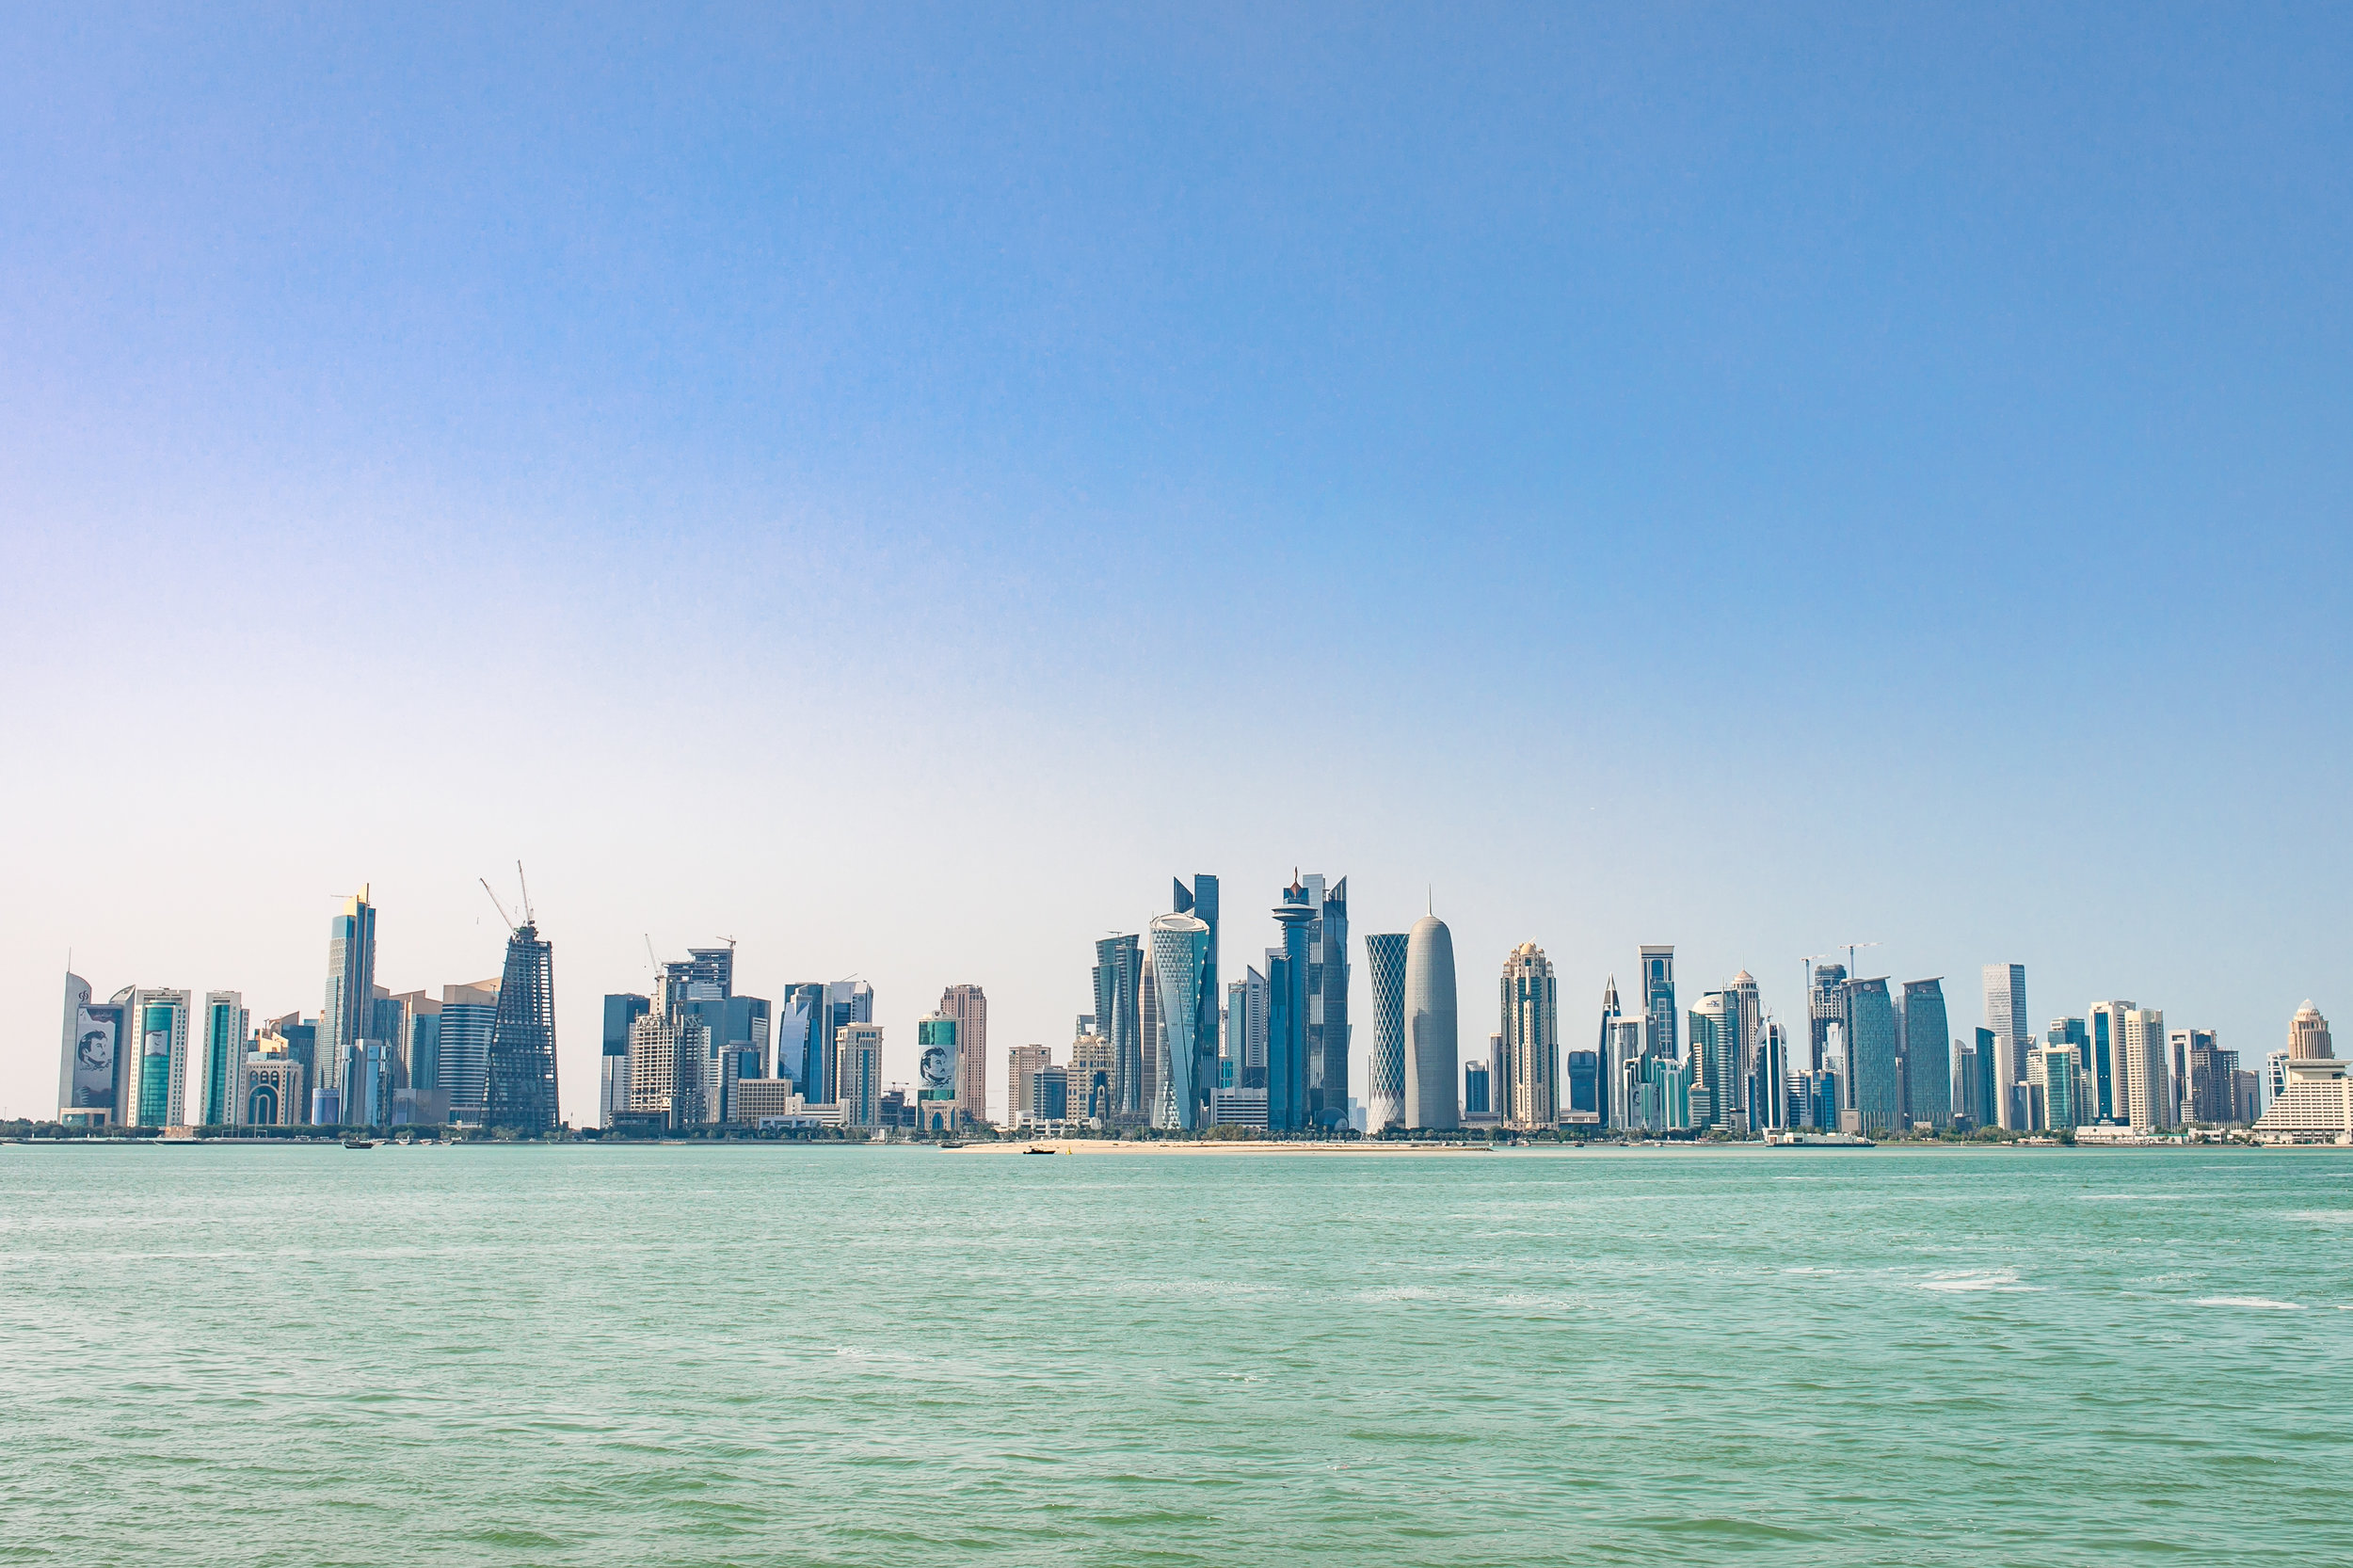 The futuristic skyline of Doha.